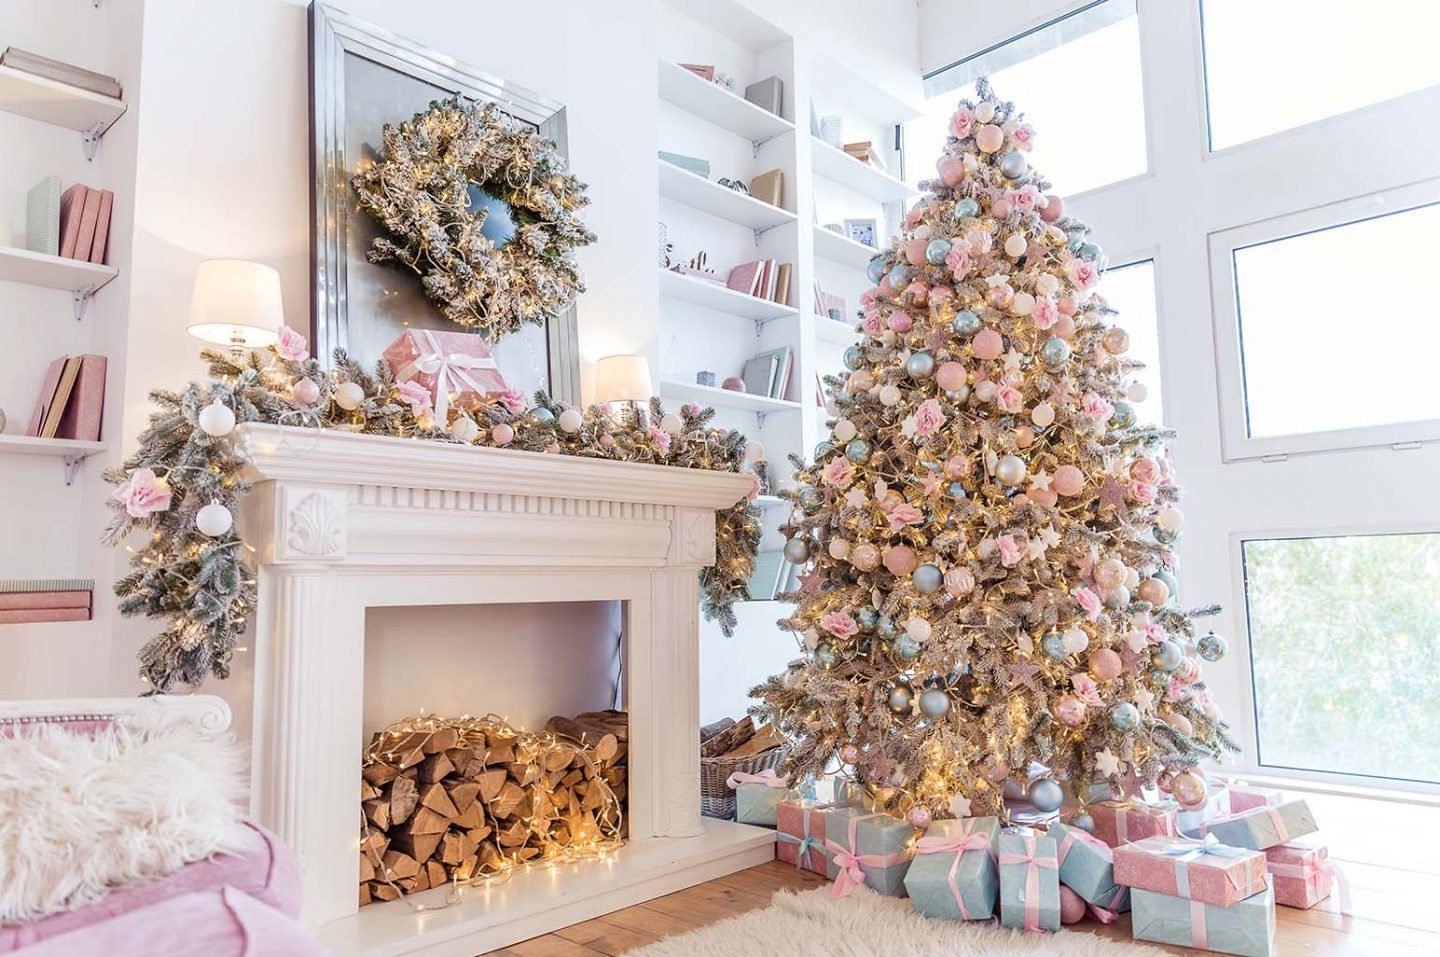 Frugal Ways to Decorate for Christmas